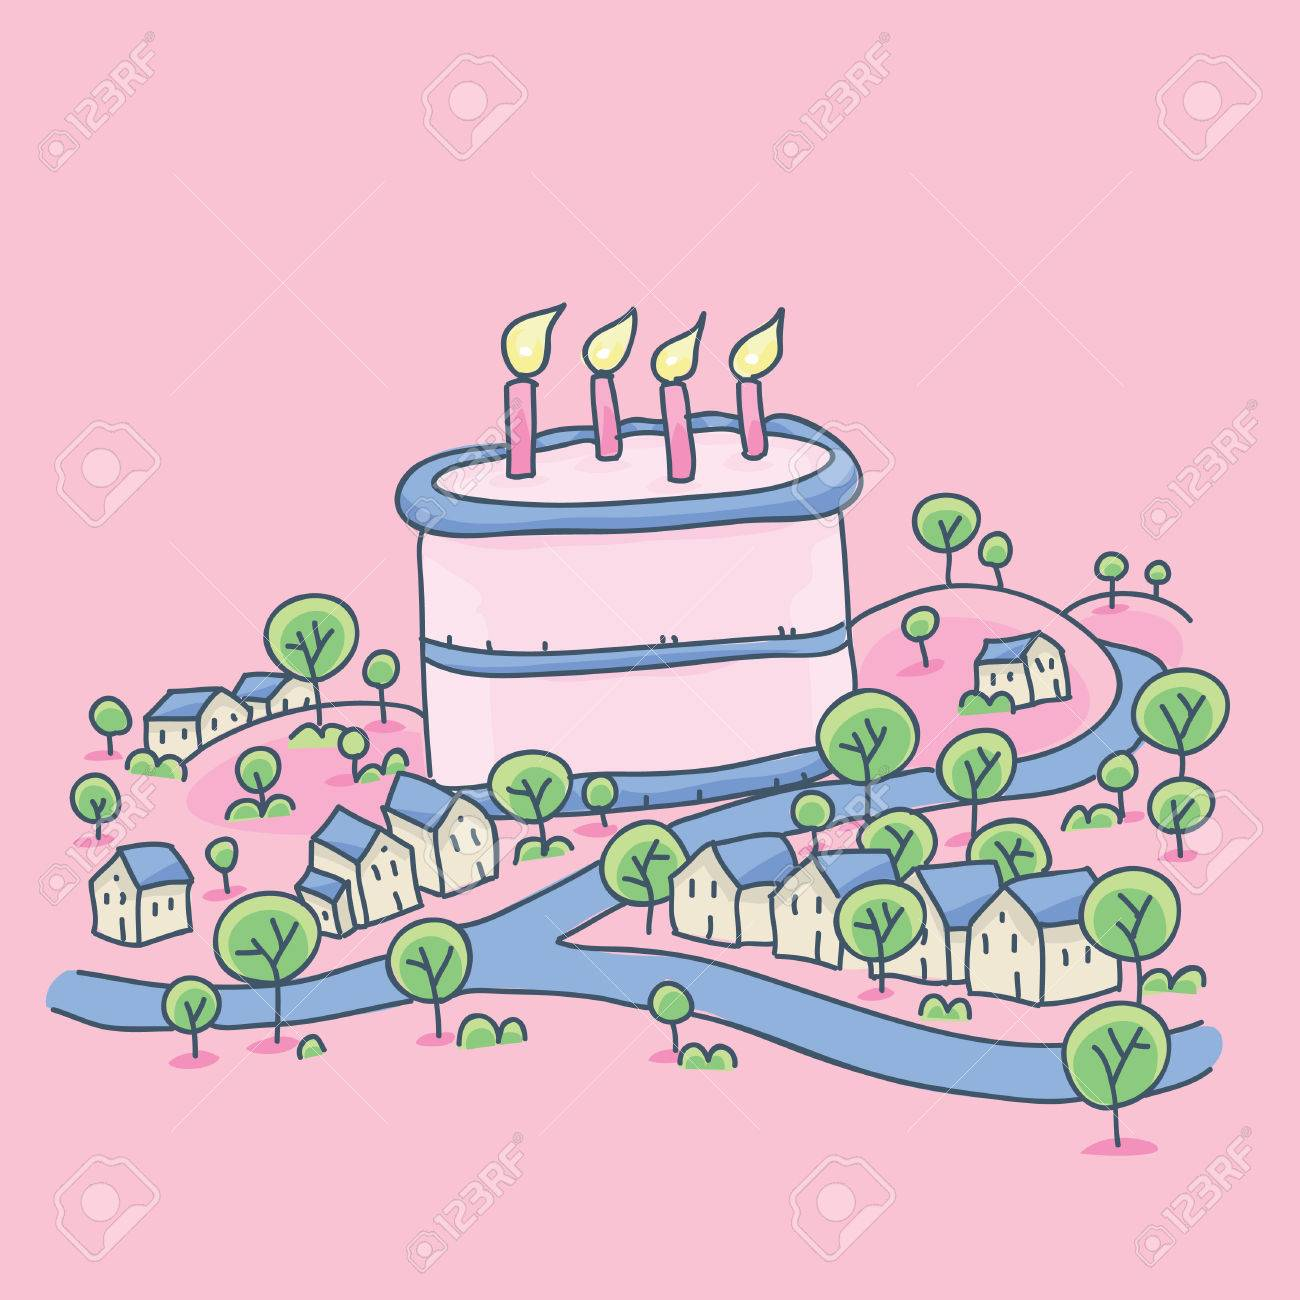 Superb A Small Cartoon Town With A Giant Birthday Cake In The Middle Birthday Cards Printable Benkemecafe Filternl